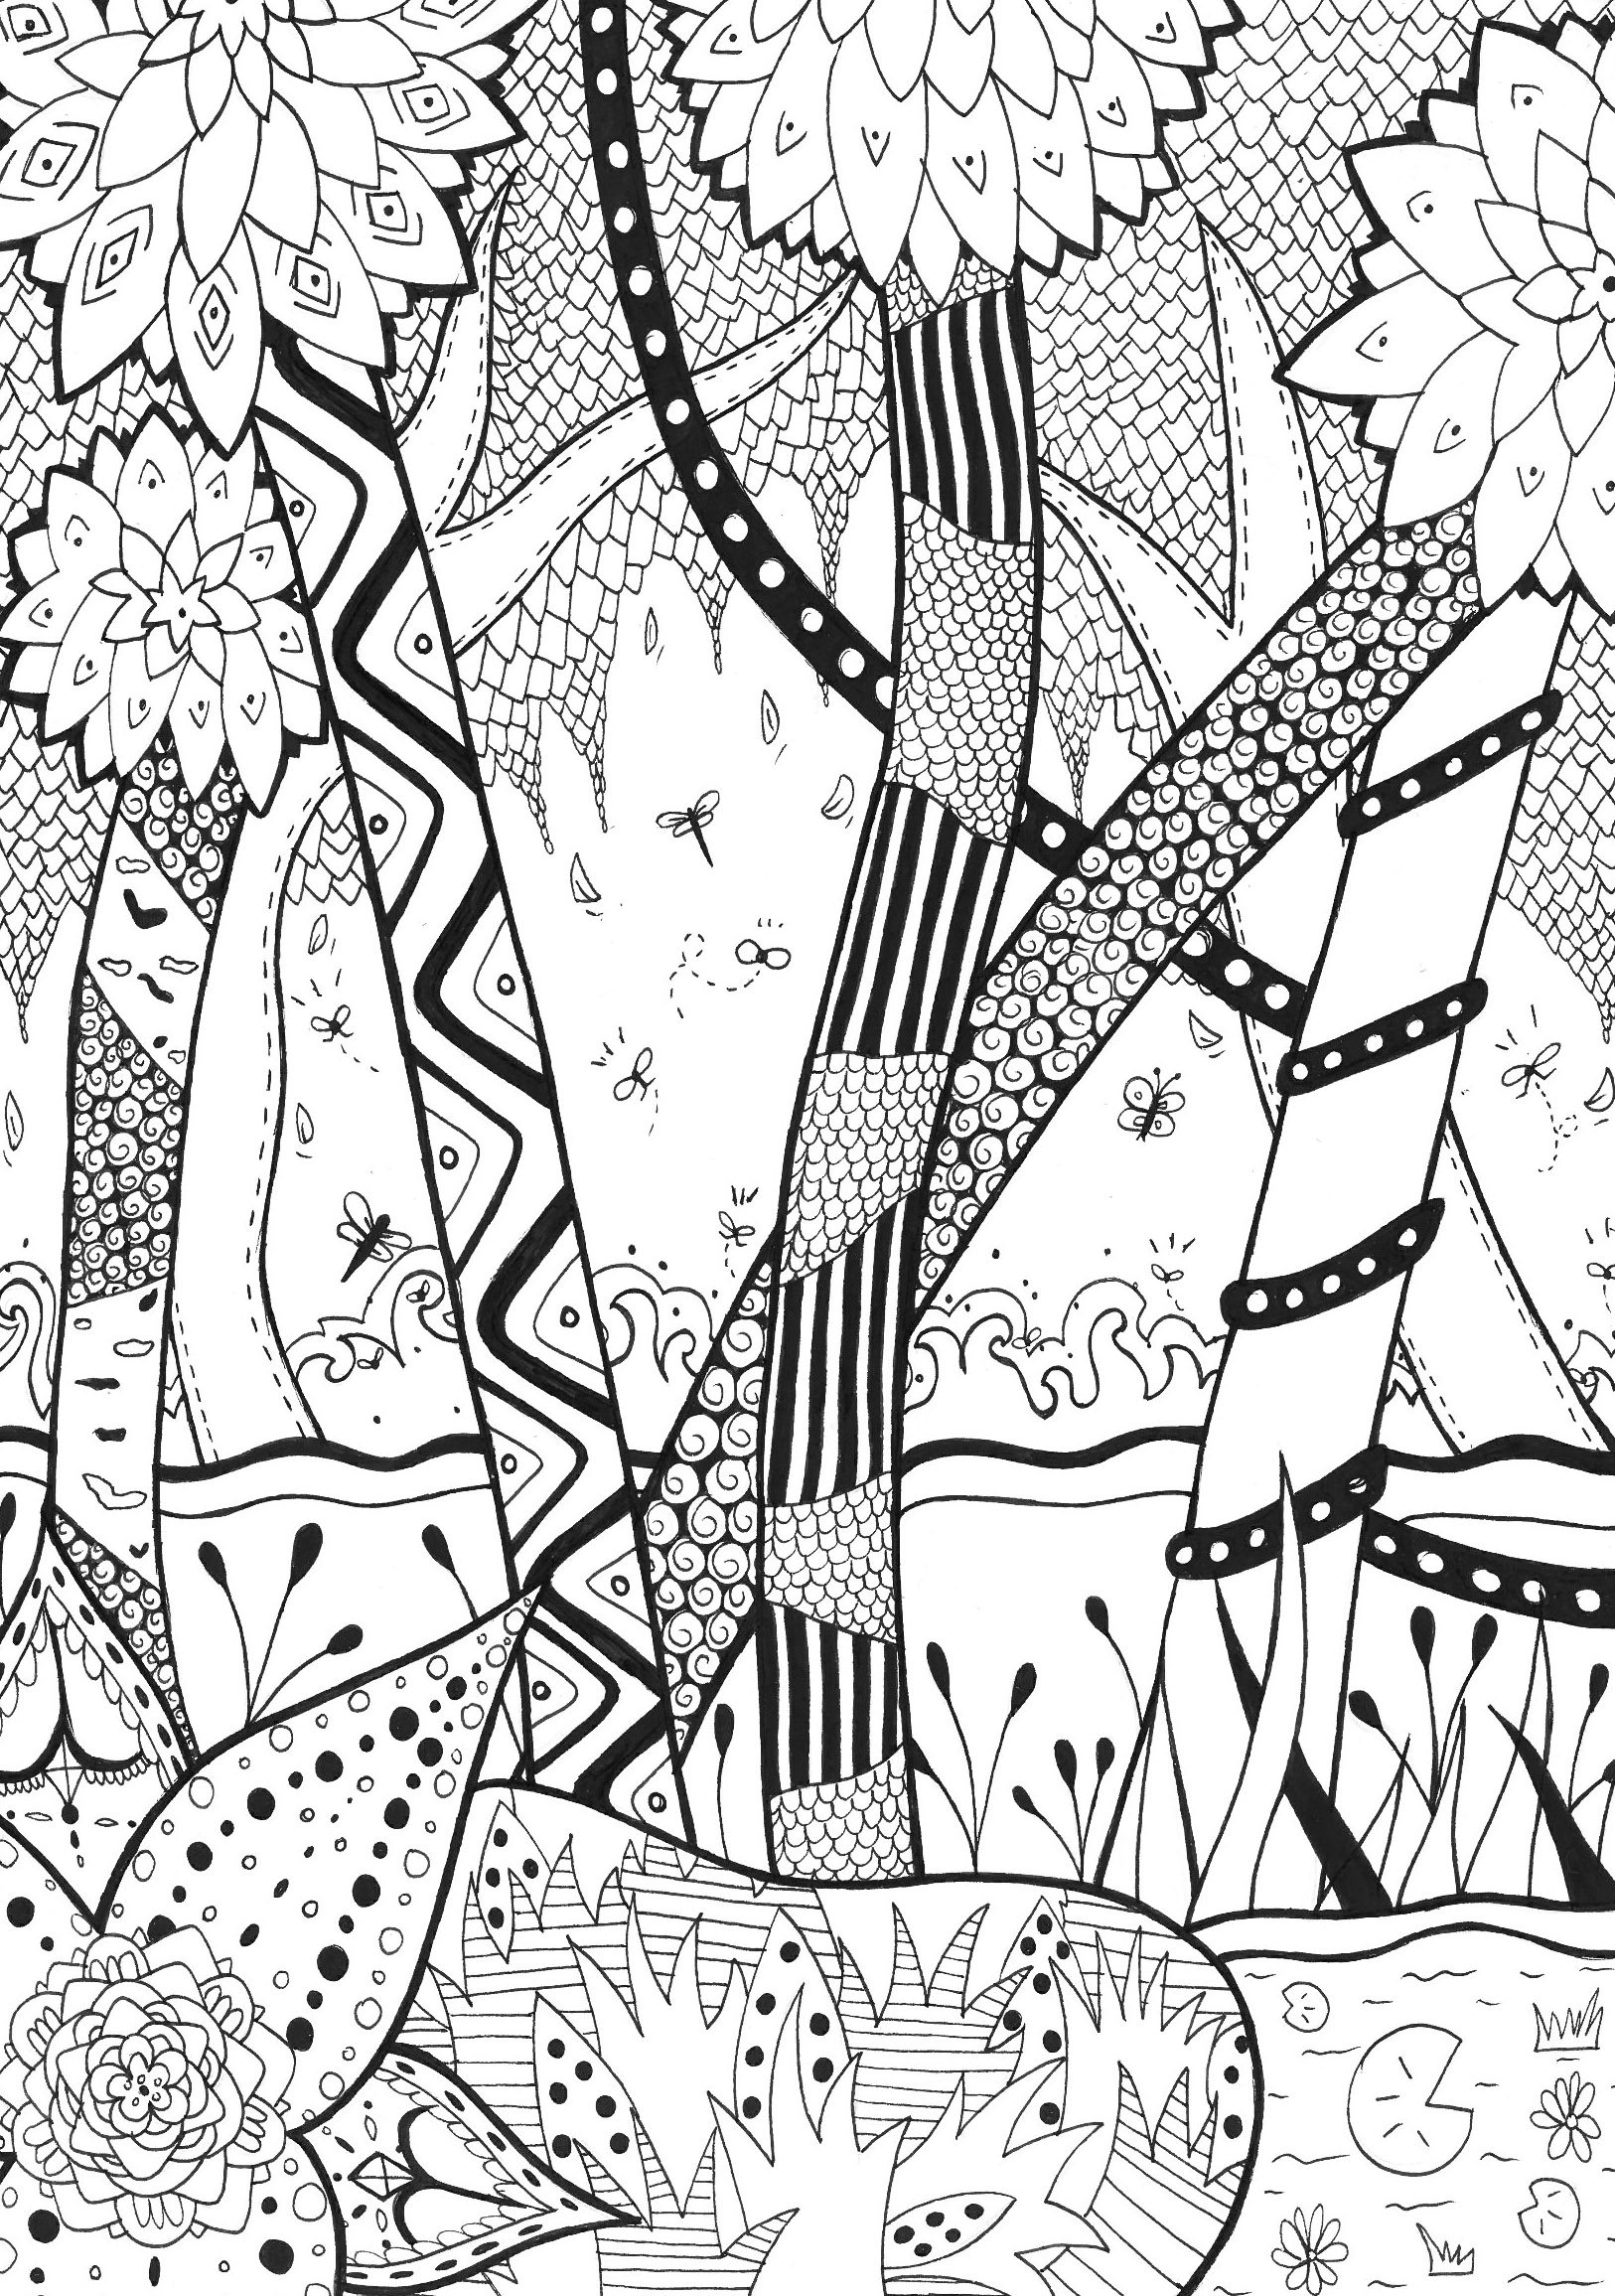 Jungle & Forest - Coloring Pages for Adults